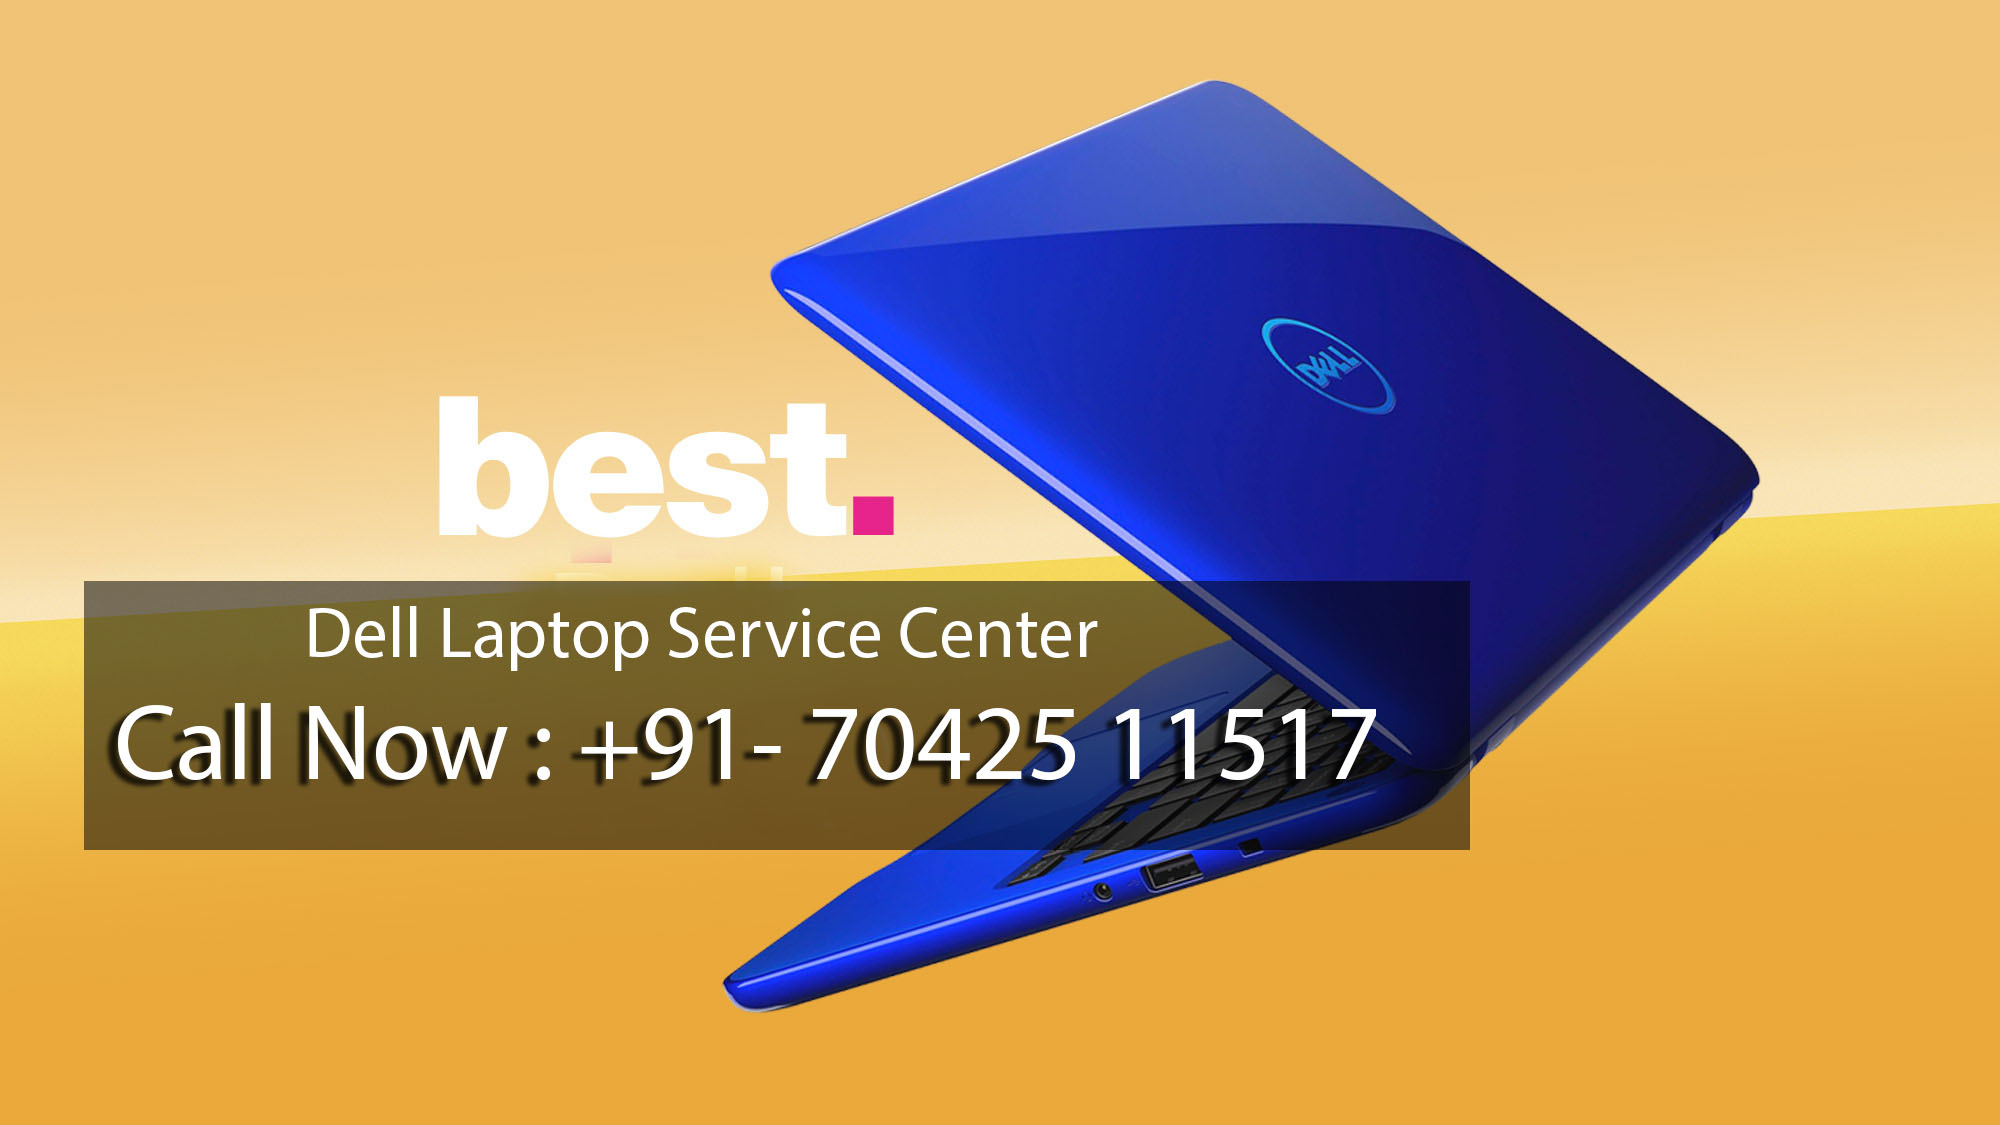 Dell Service Center in Chandani Chowk